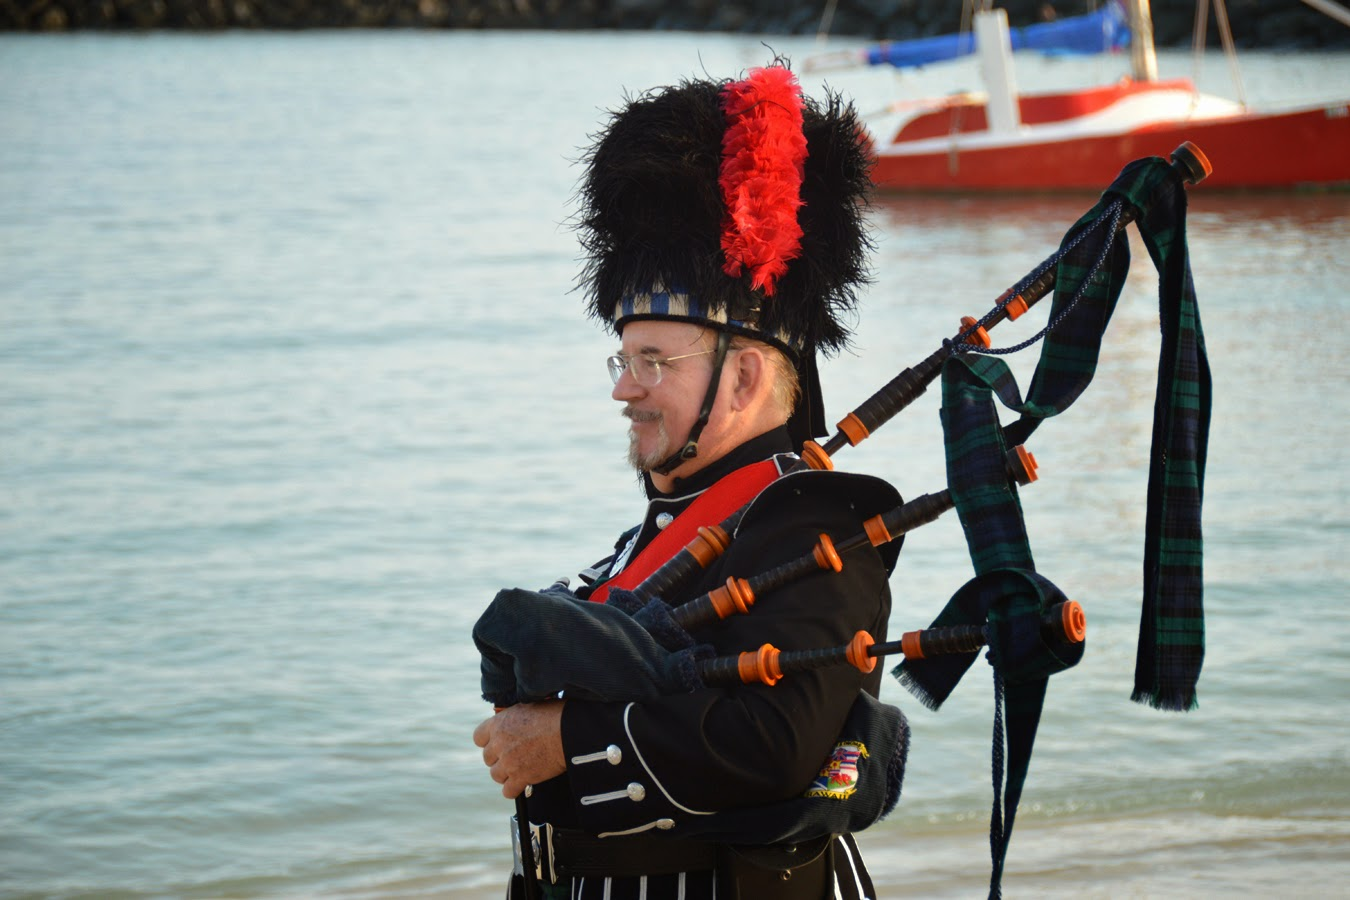 Celtic Pipes & Drums of Hawaii